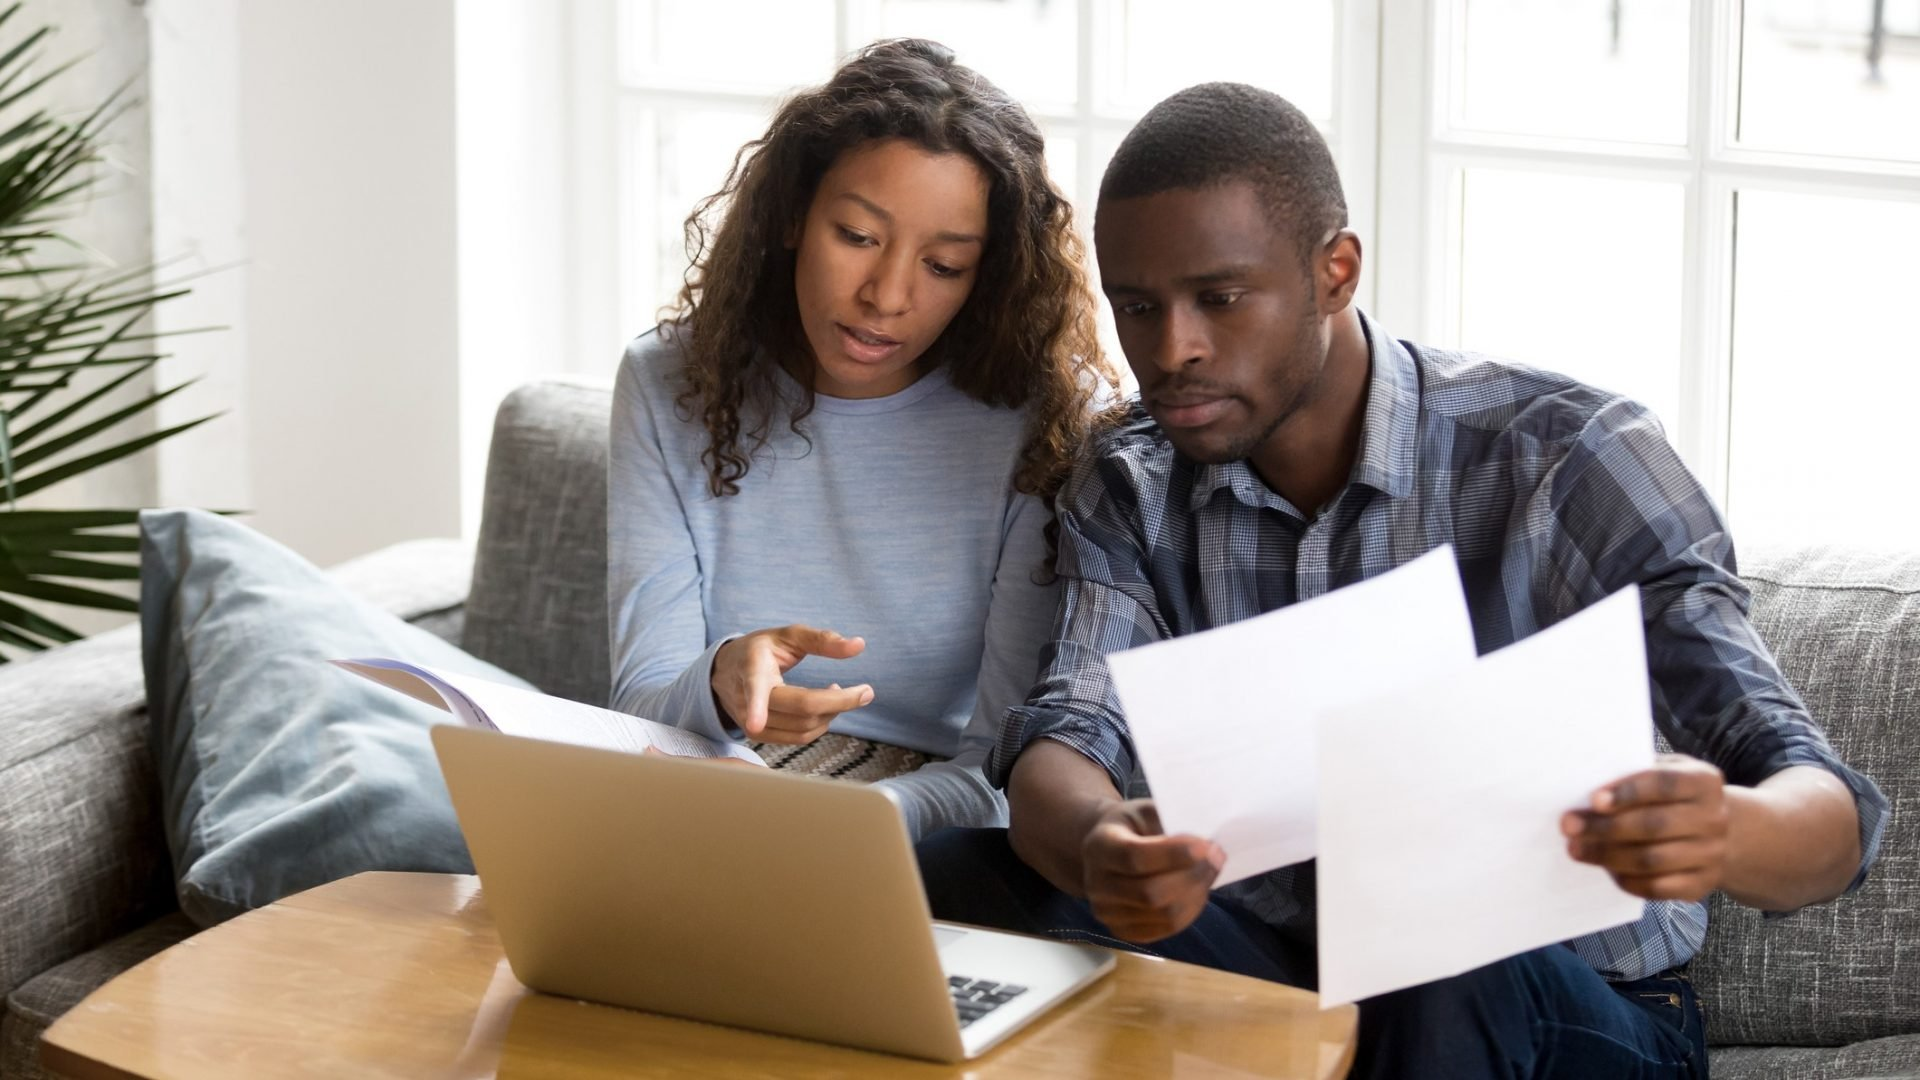 Over 20% of Women Take No Part in Couples' Retirement Planning, Study Shows